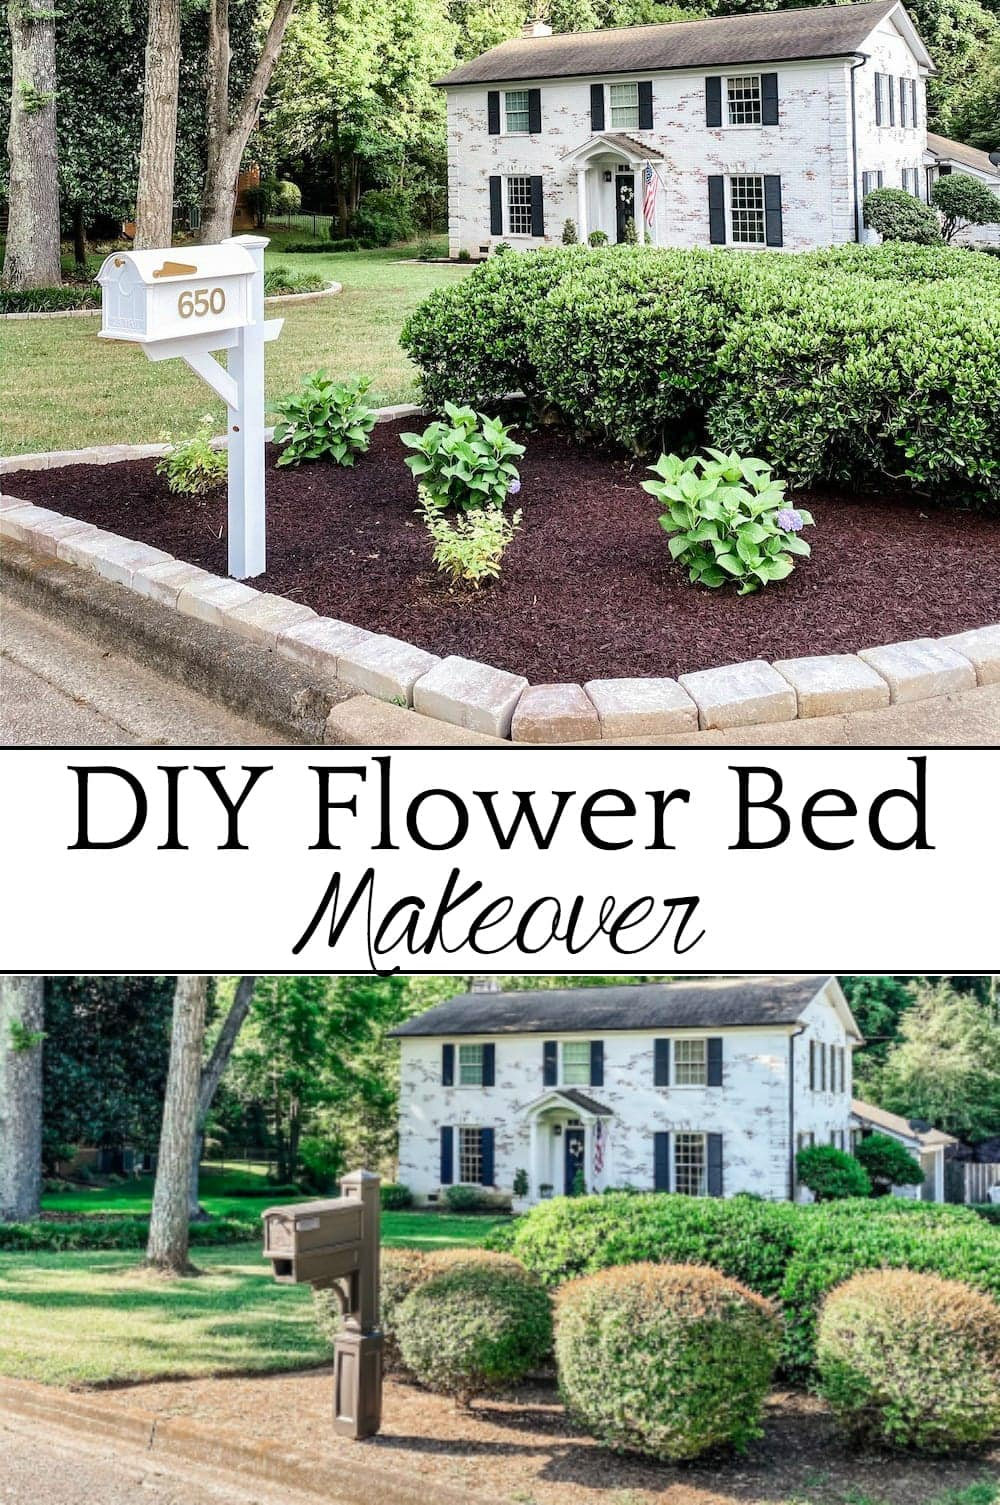 DIY Flower Bed Makeover | A step-by-step DIY tutorial with STIHL to take your flower beds from drab to fab to increase curb appeal, plus all the best tools to get the job done. #ad